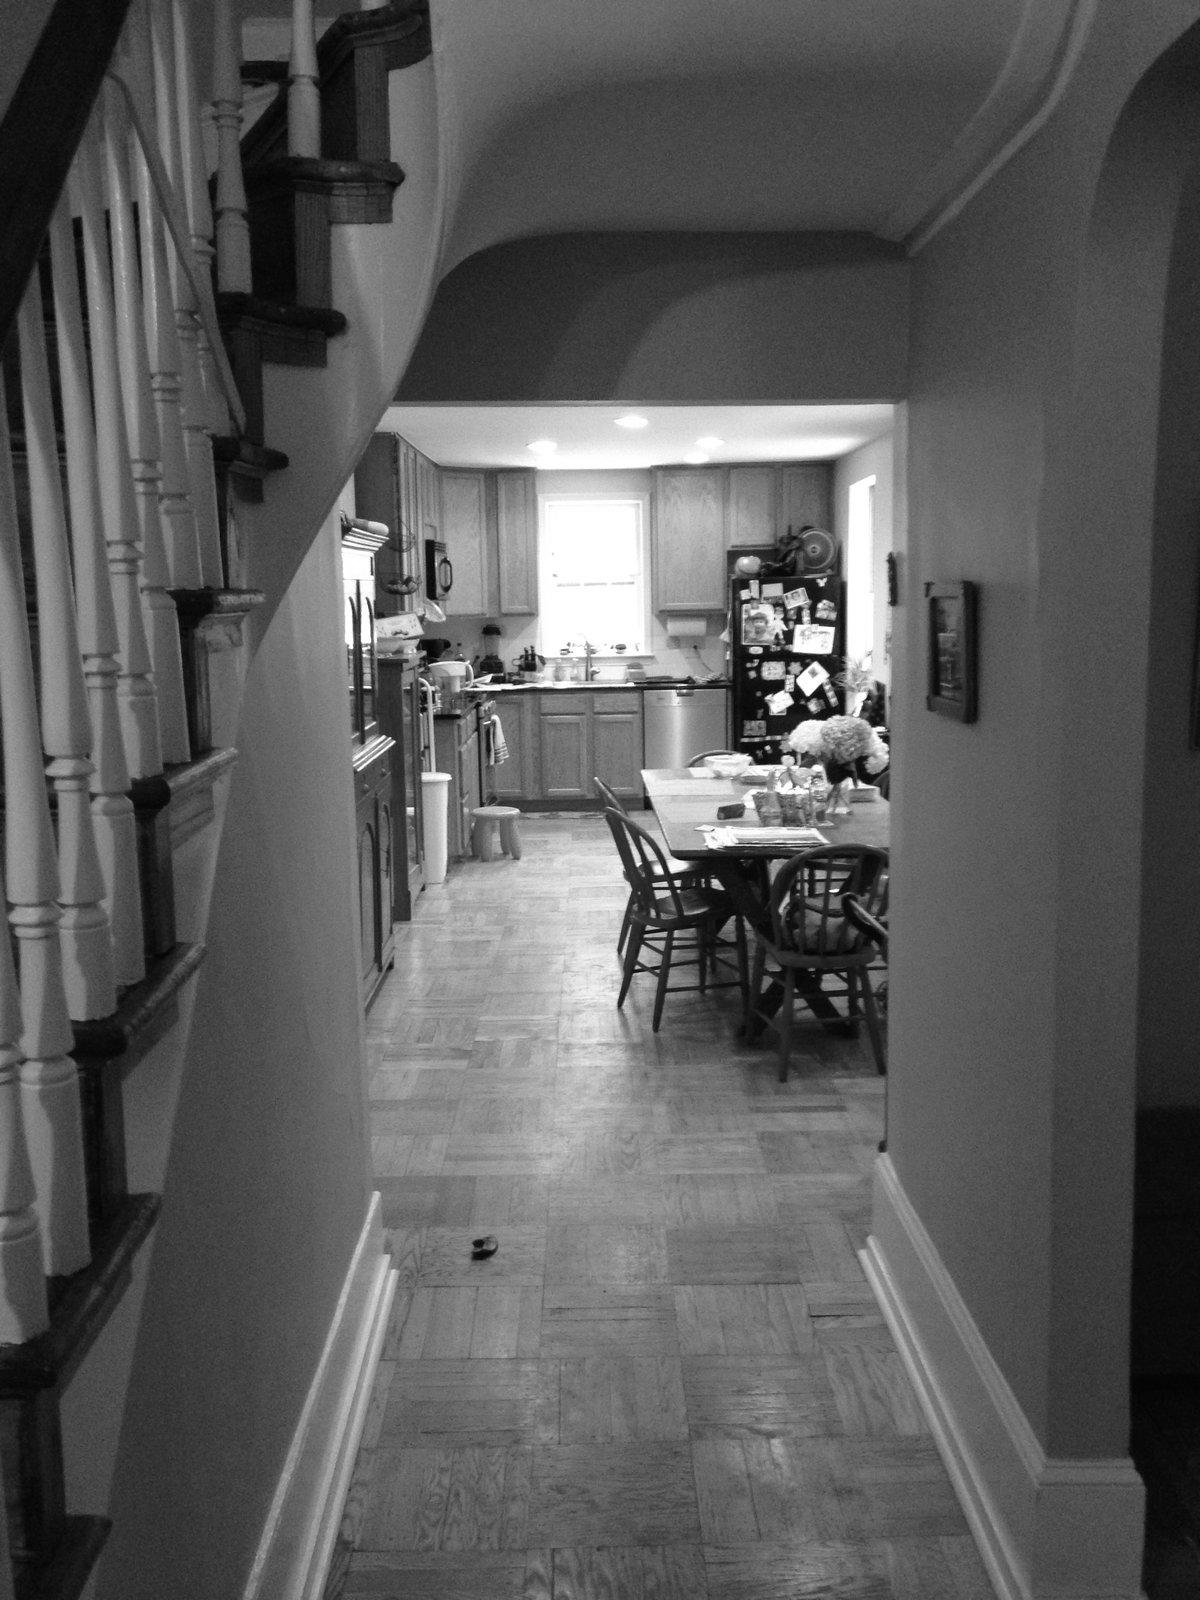 Reorganizing the original kitchen and dining area was one of the main goals of the renovation.